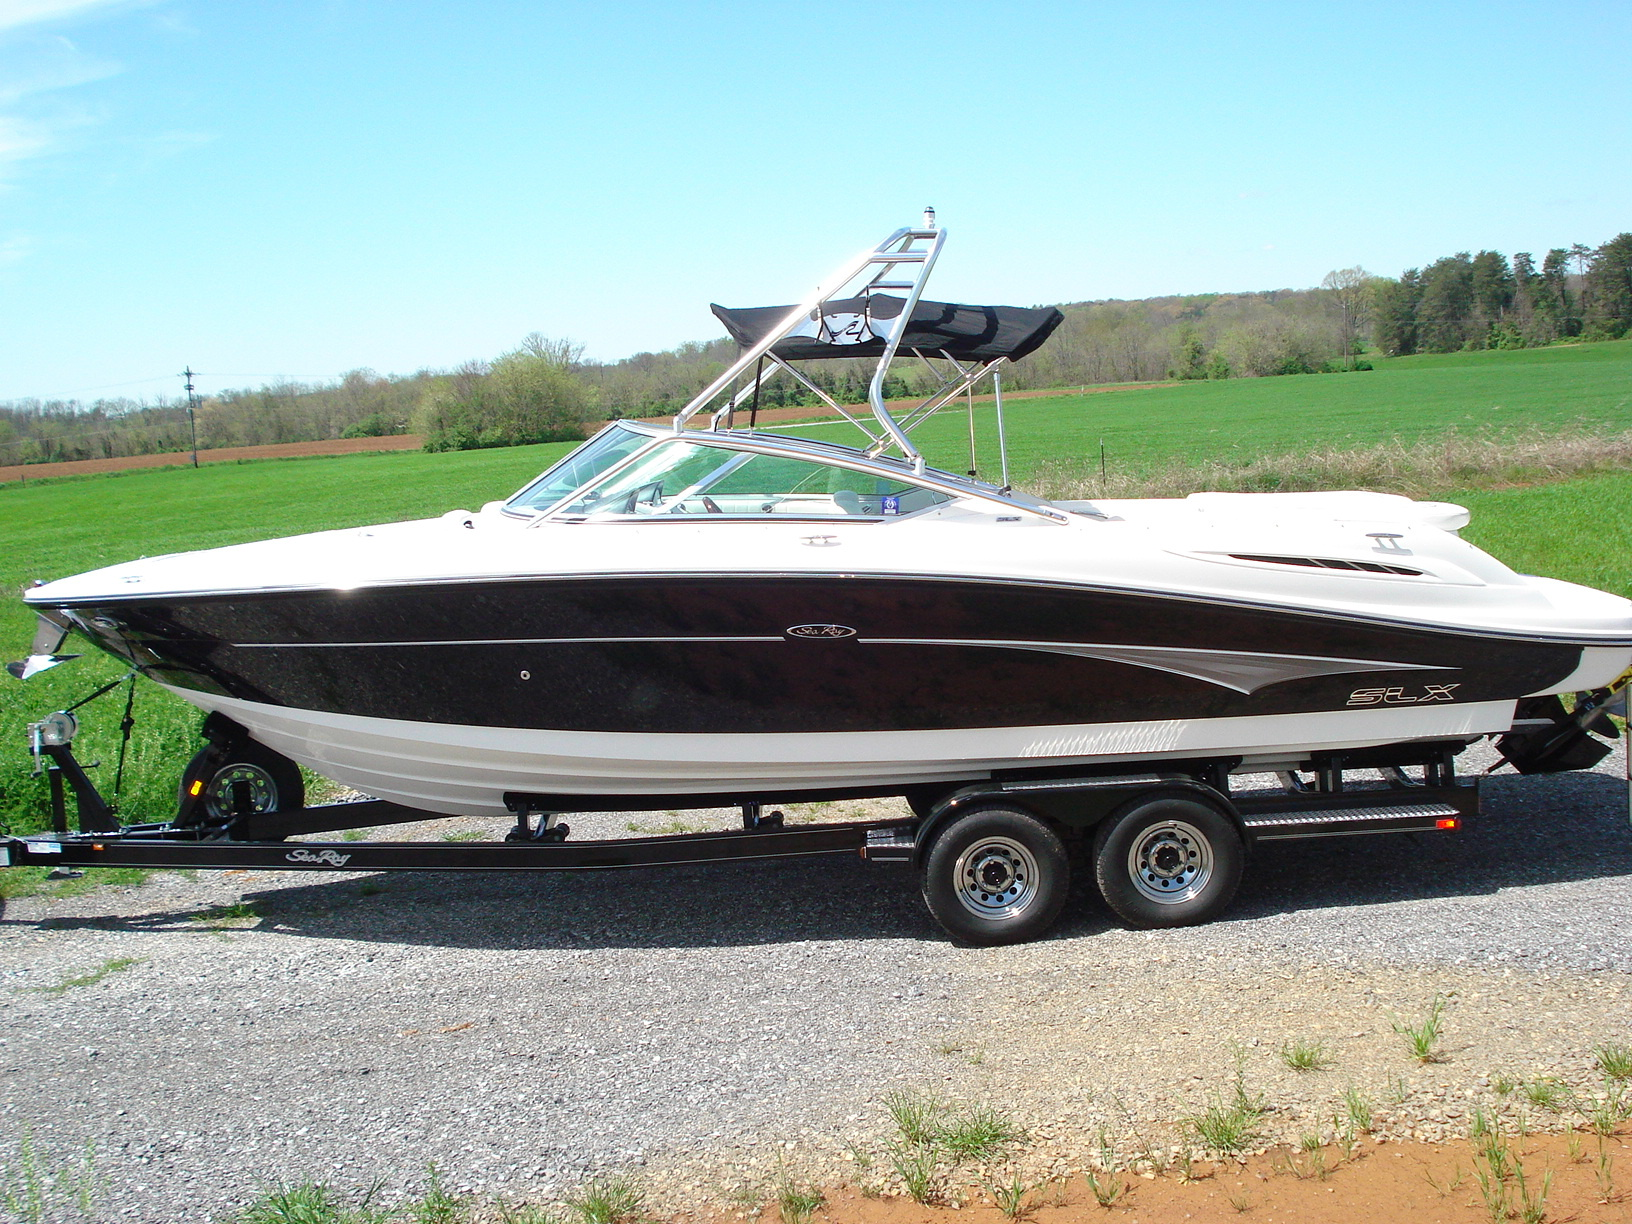 main image of 07 sea ray 270 sport with new dimension tower